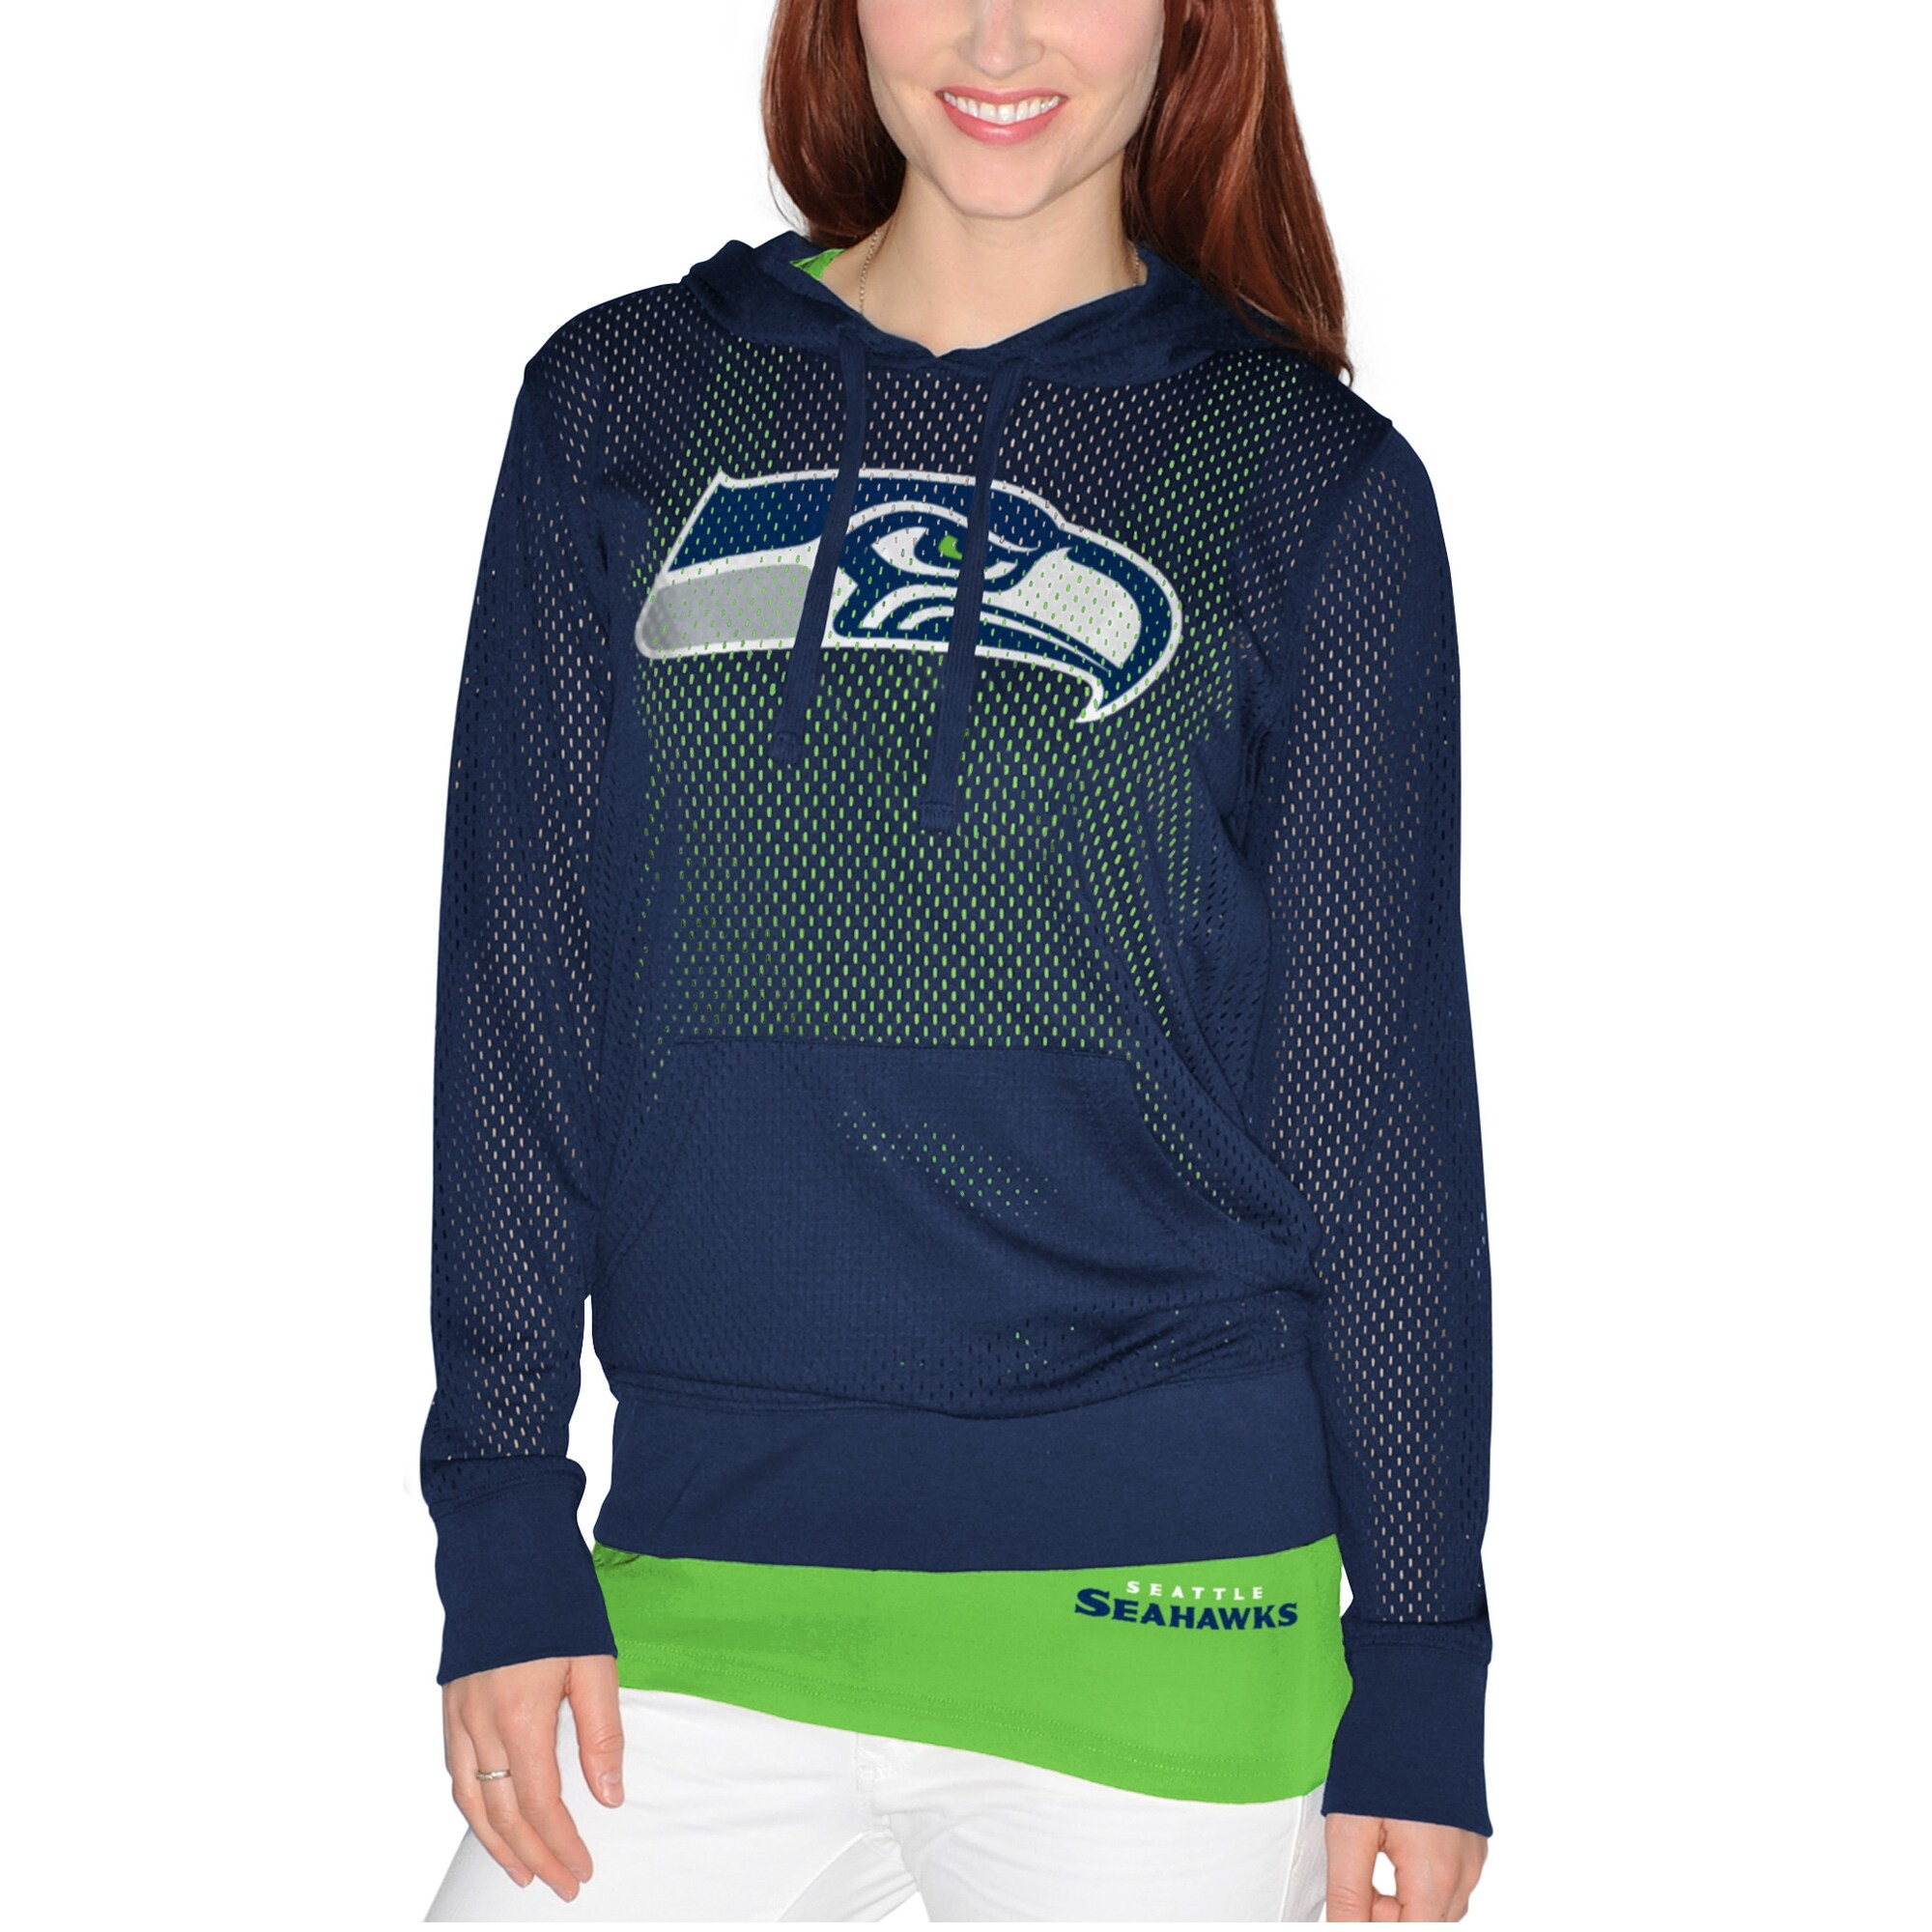 Seattle Seahawks Women's Holey Hoodie T-Shirt & Tank Top Set - Navy